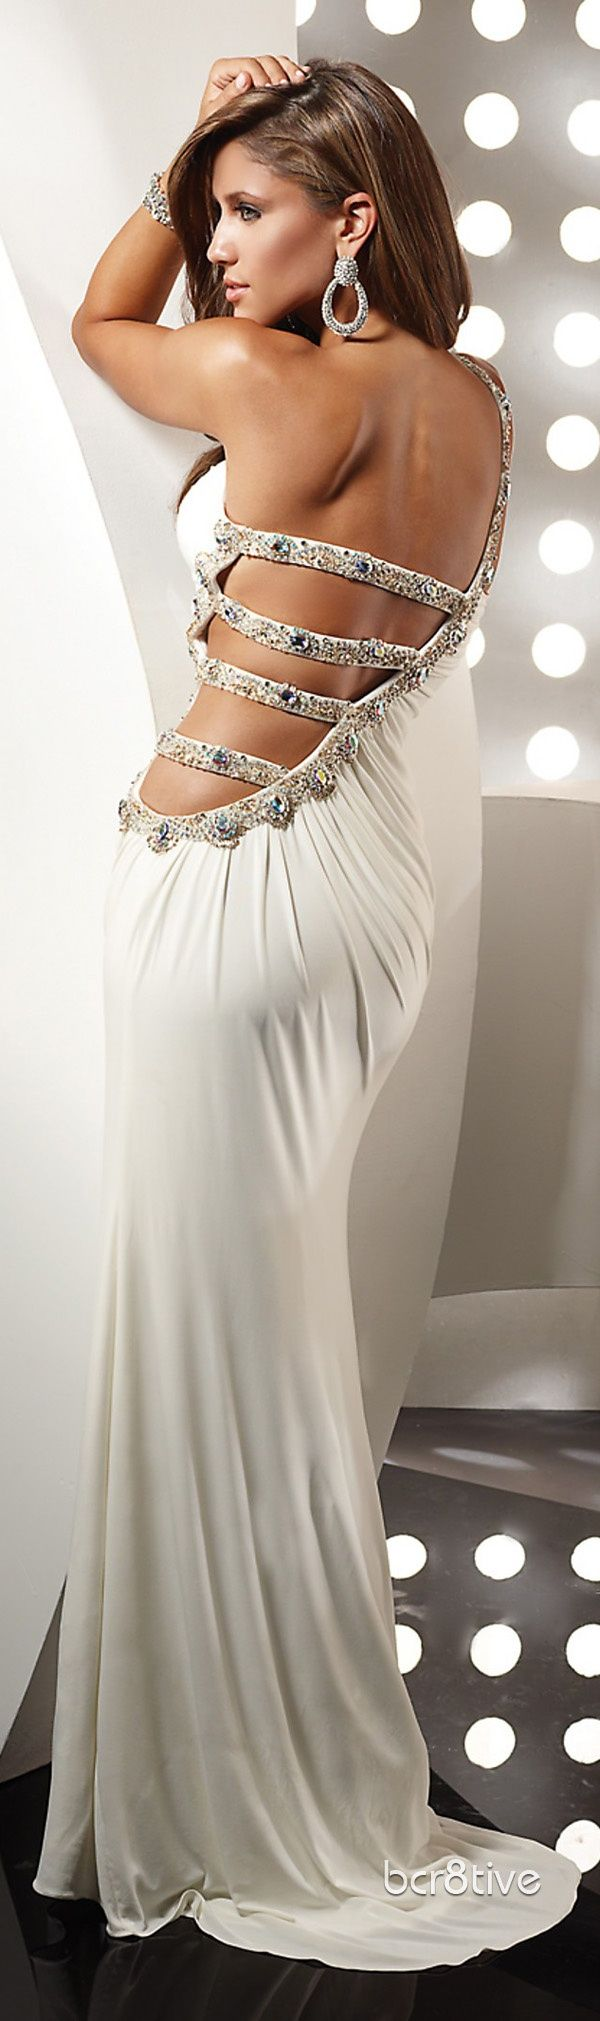 Jasz Couture Prom Dresses Style 4335